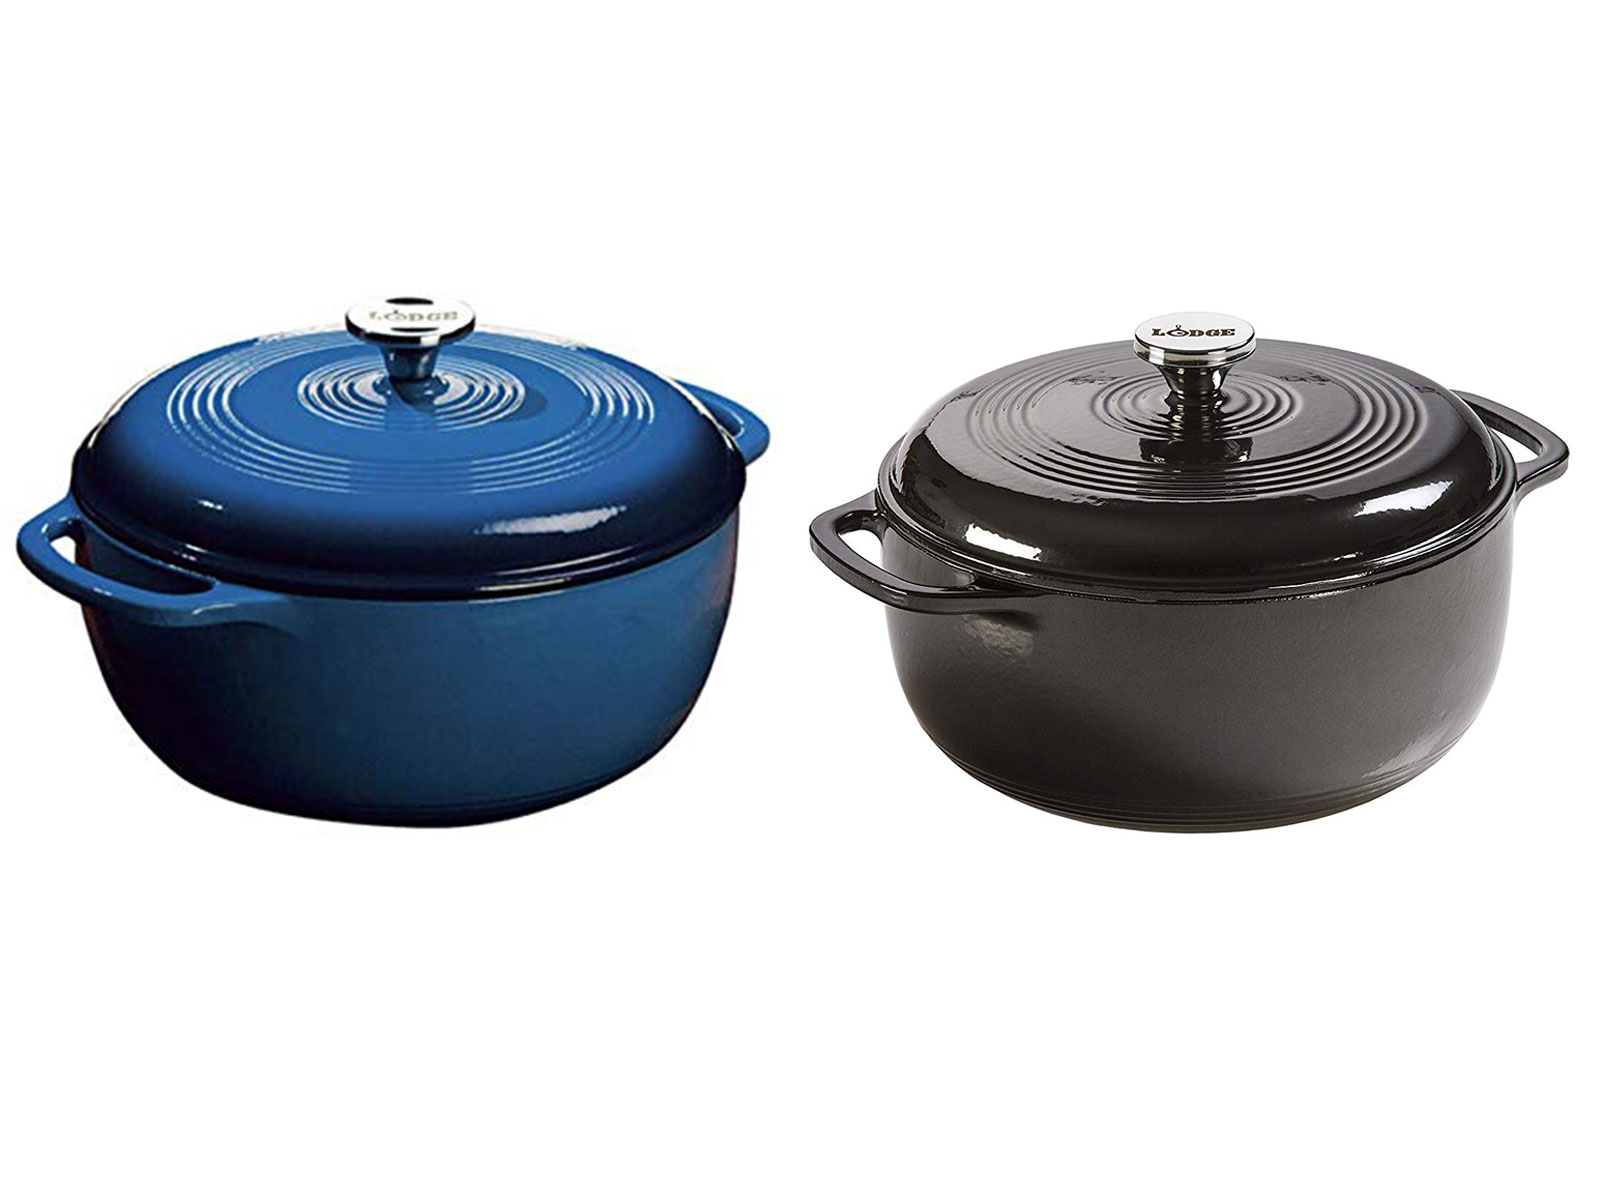 lodge enameled dutch ovens